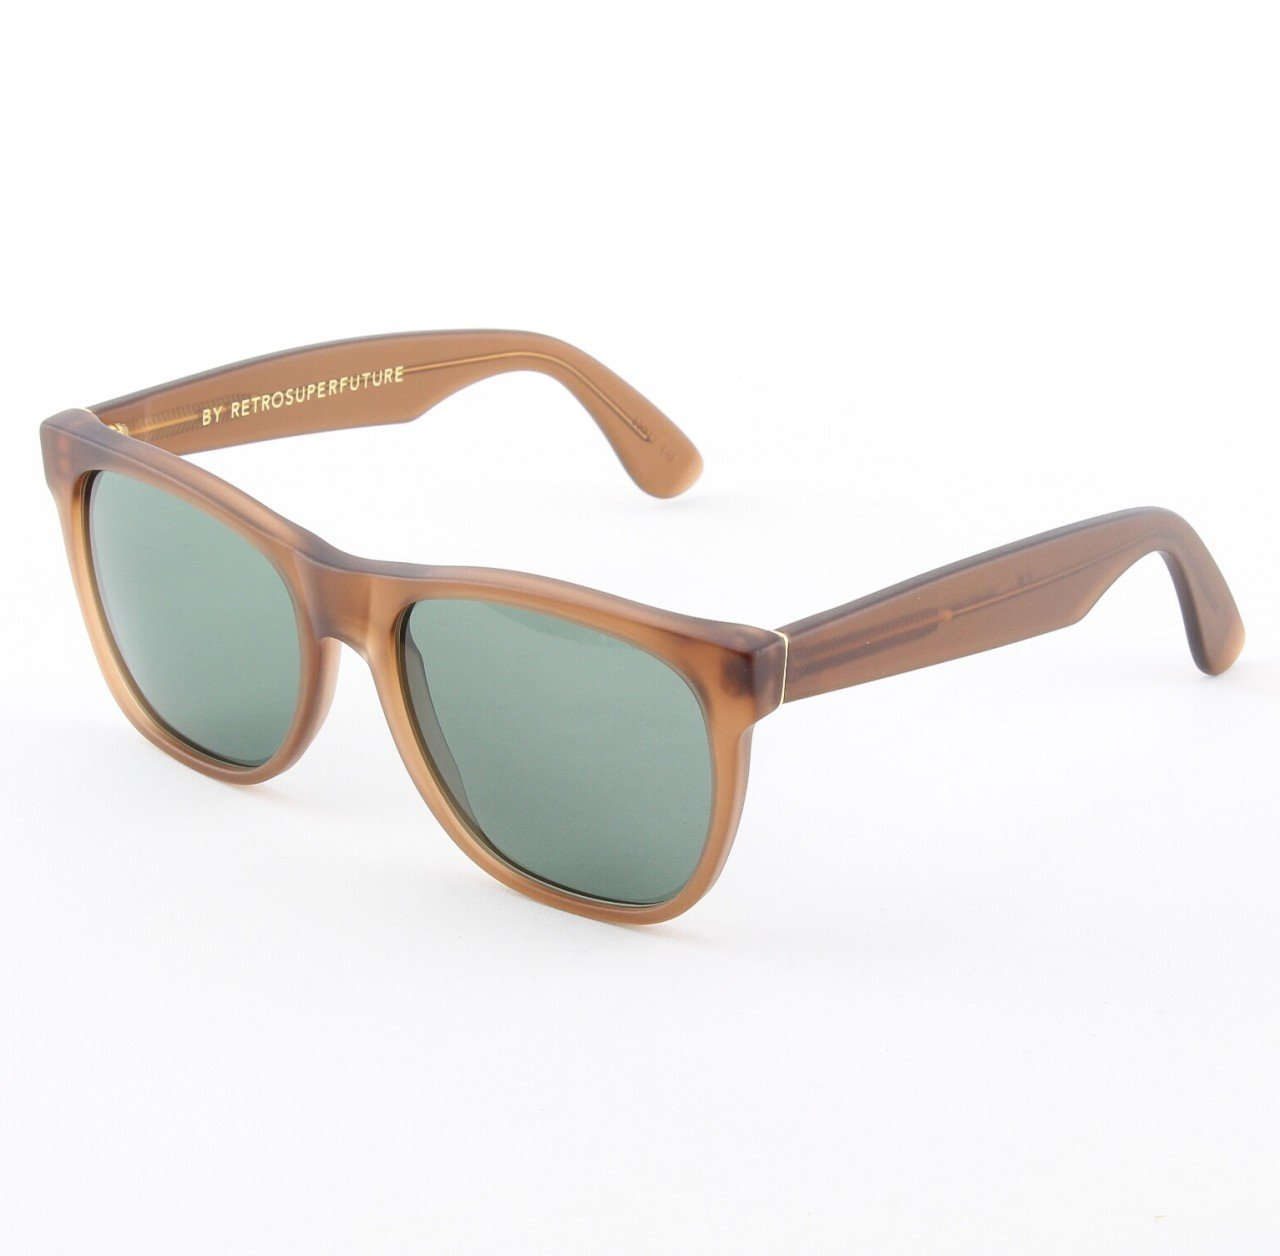 Super Classic 496/2T Sunglasses Brown with Green Zeiss Lenses by RETROSUPERFUTURE